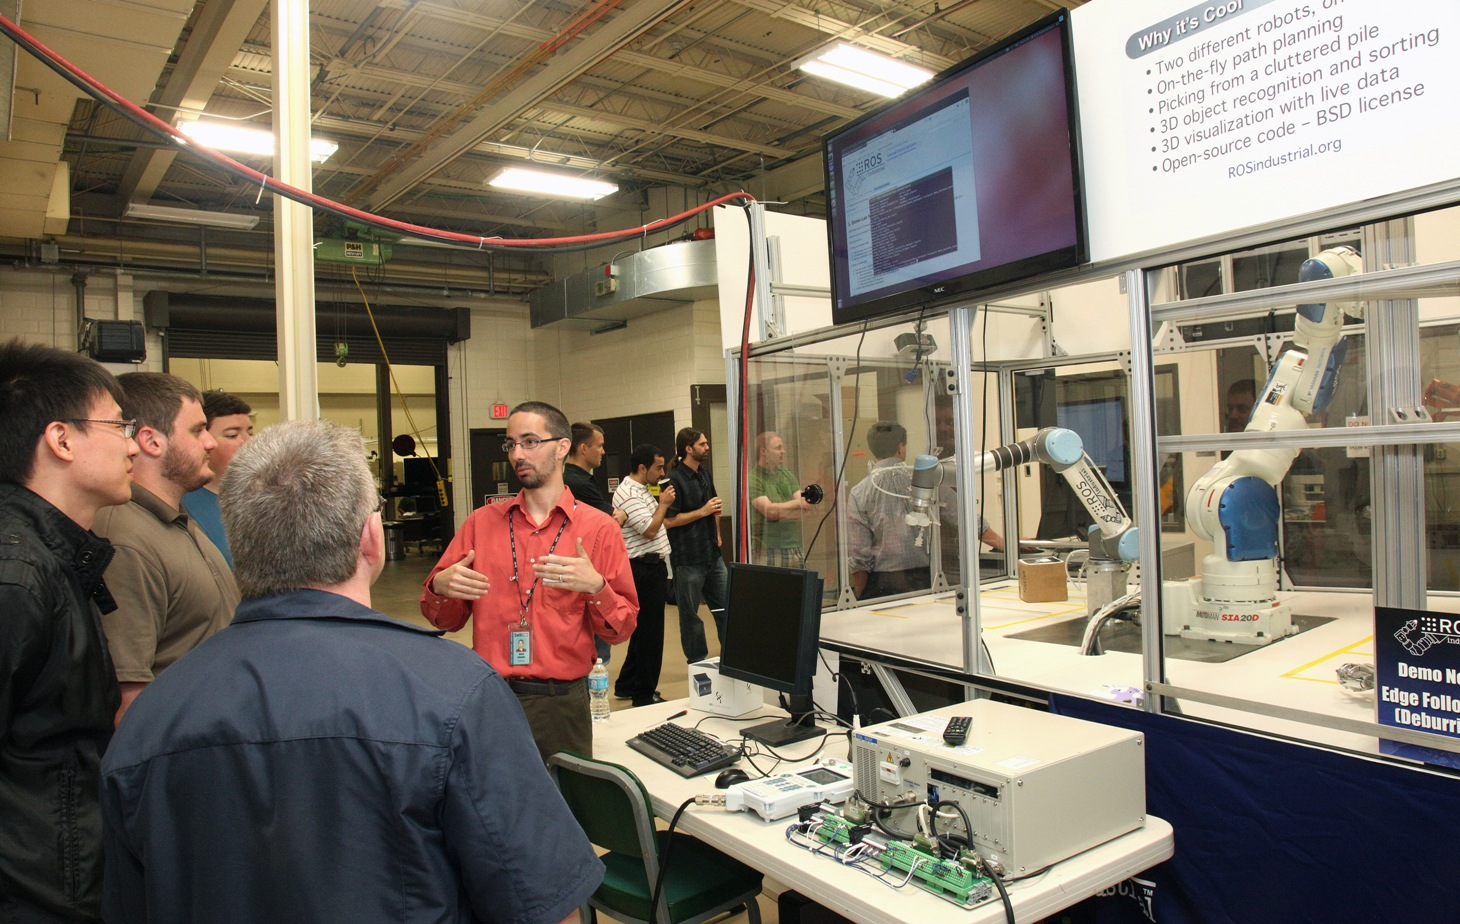 Shaun Edwards (red shirt, SwRI) in his element explaining how to configure MoveIt! to control the Motoman SIA20D (right robot).